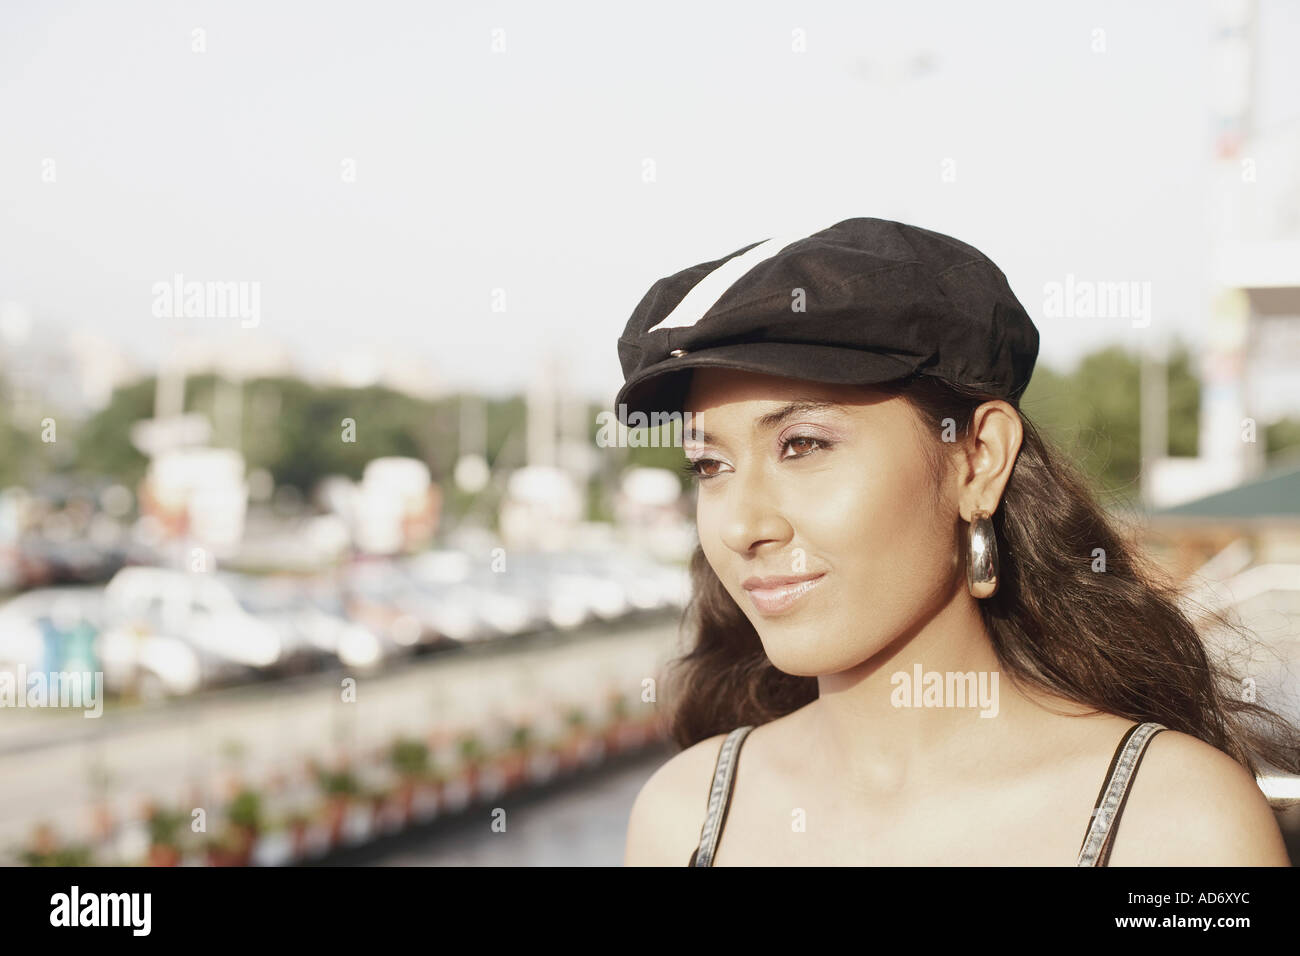 016f666257405 Close-up of a young woman wearing a cap Stock Photo  7614011 - Alamy